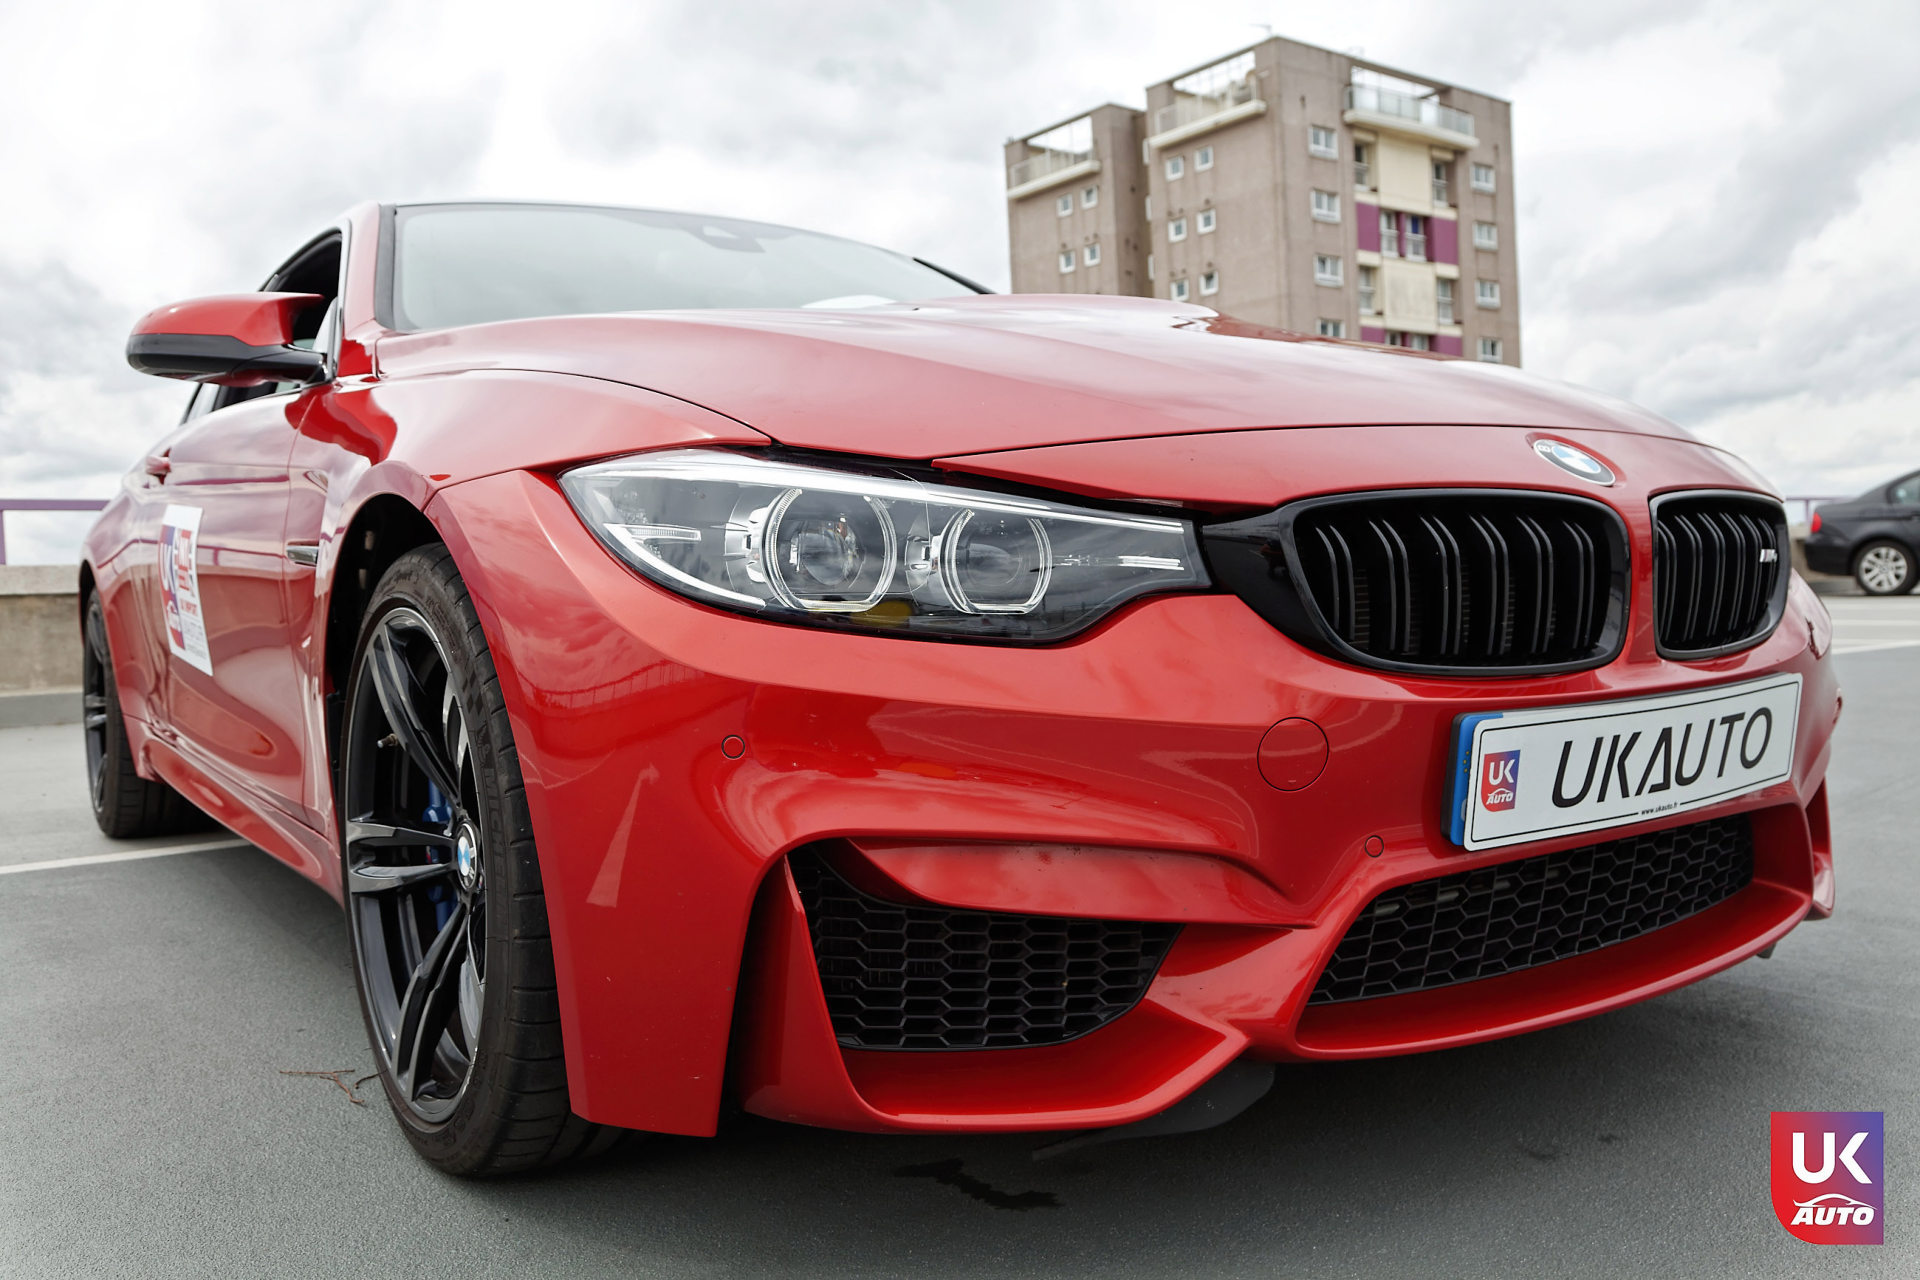 BMW M4 PACK COMPETITION BMW ANGLETERRE BMW IMPORT UK BMW MANDATAIRE AUTO14 DxO - IMPORTATION BMW M4 BMW IMPORT ROYAUME UNI BMW M4 COMPETITION RHD CLIENT UKAUTO